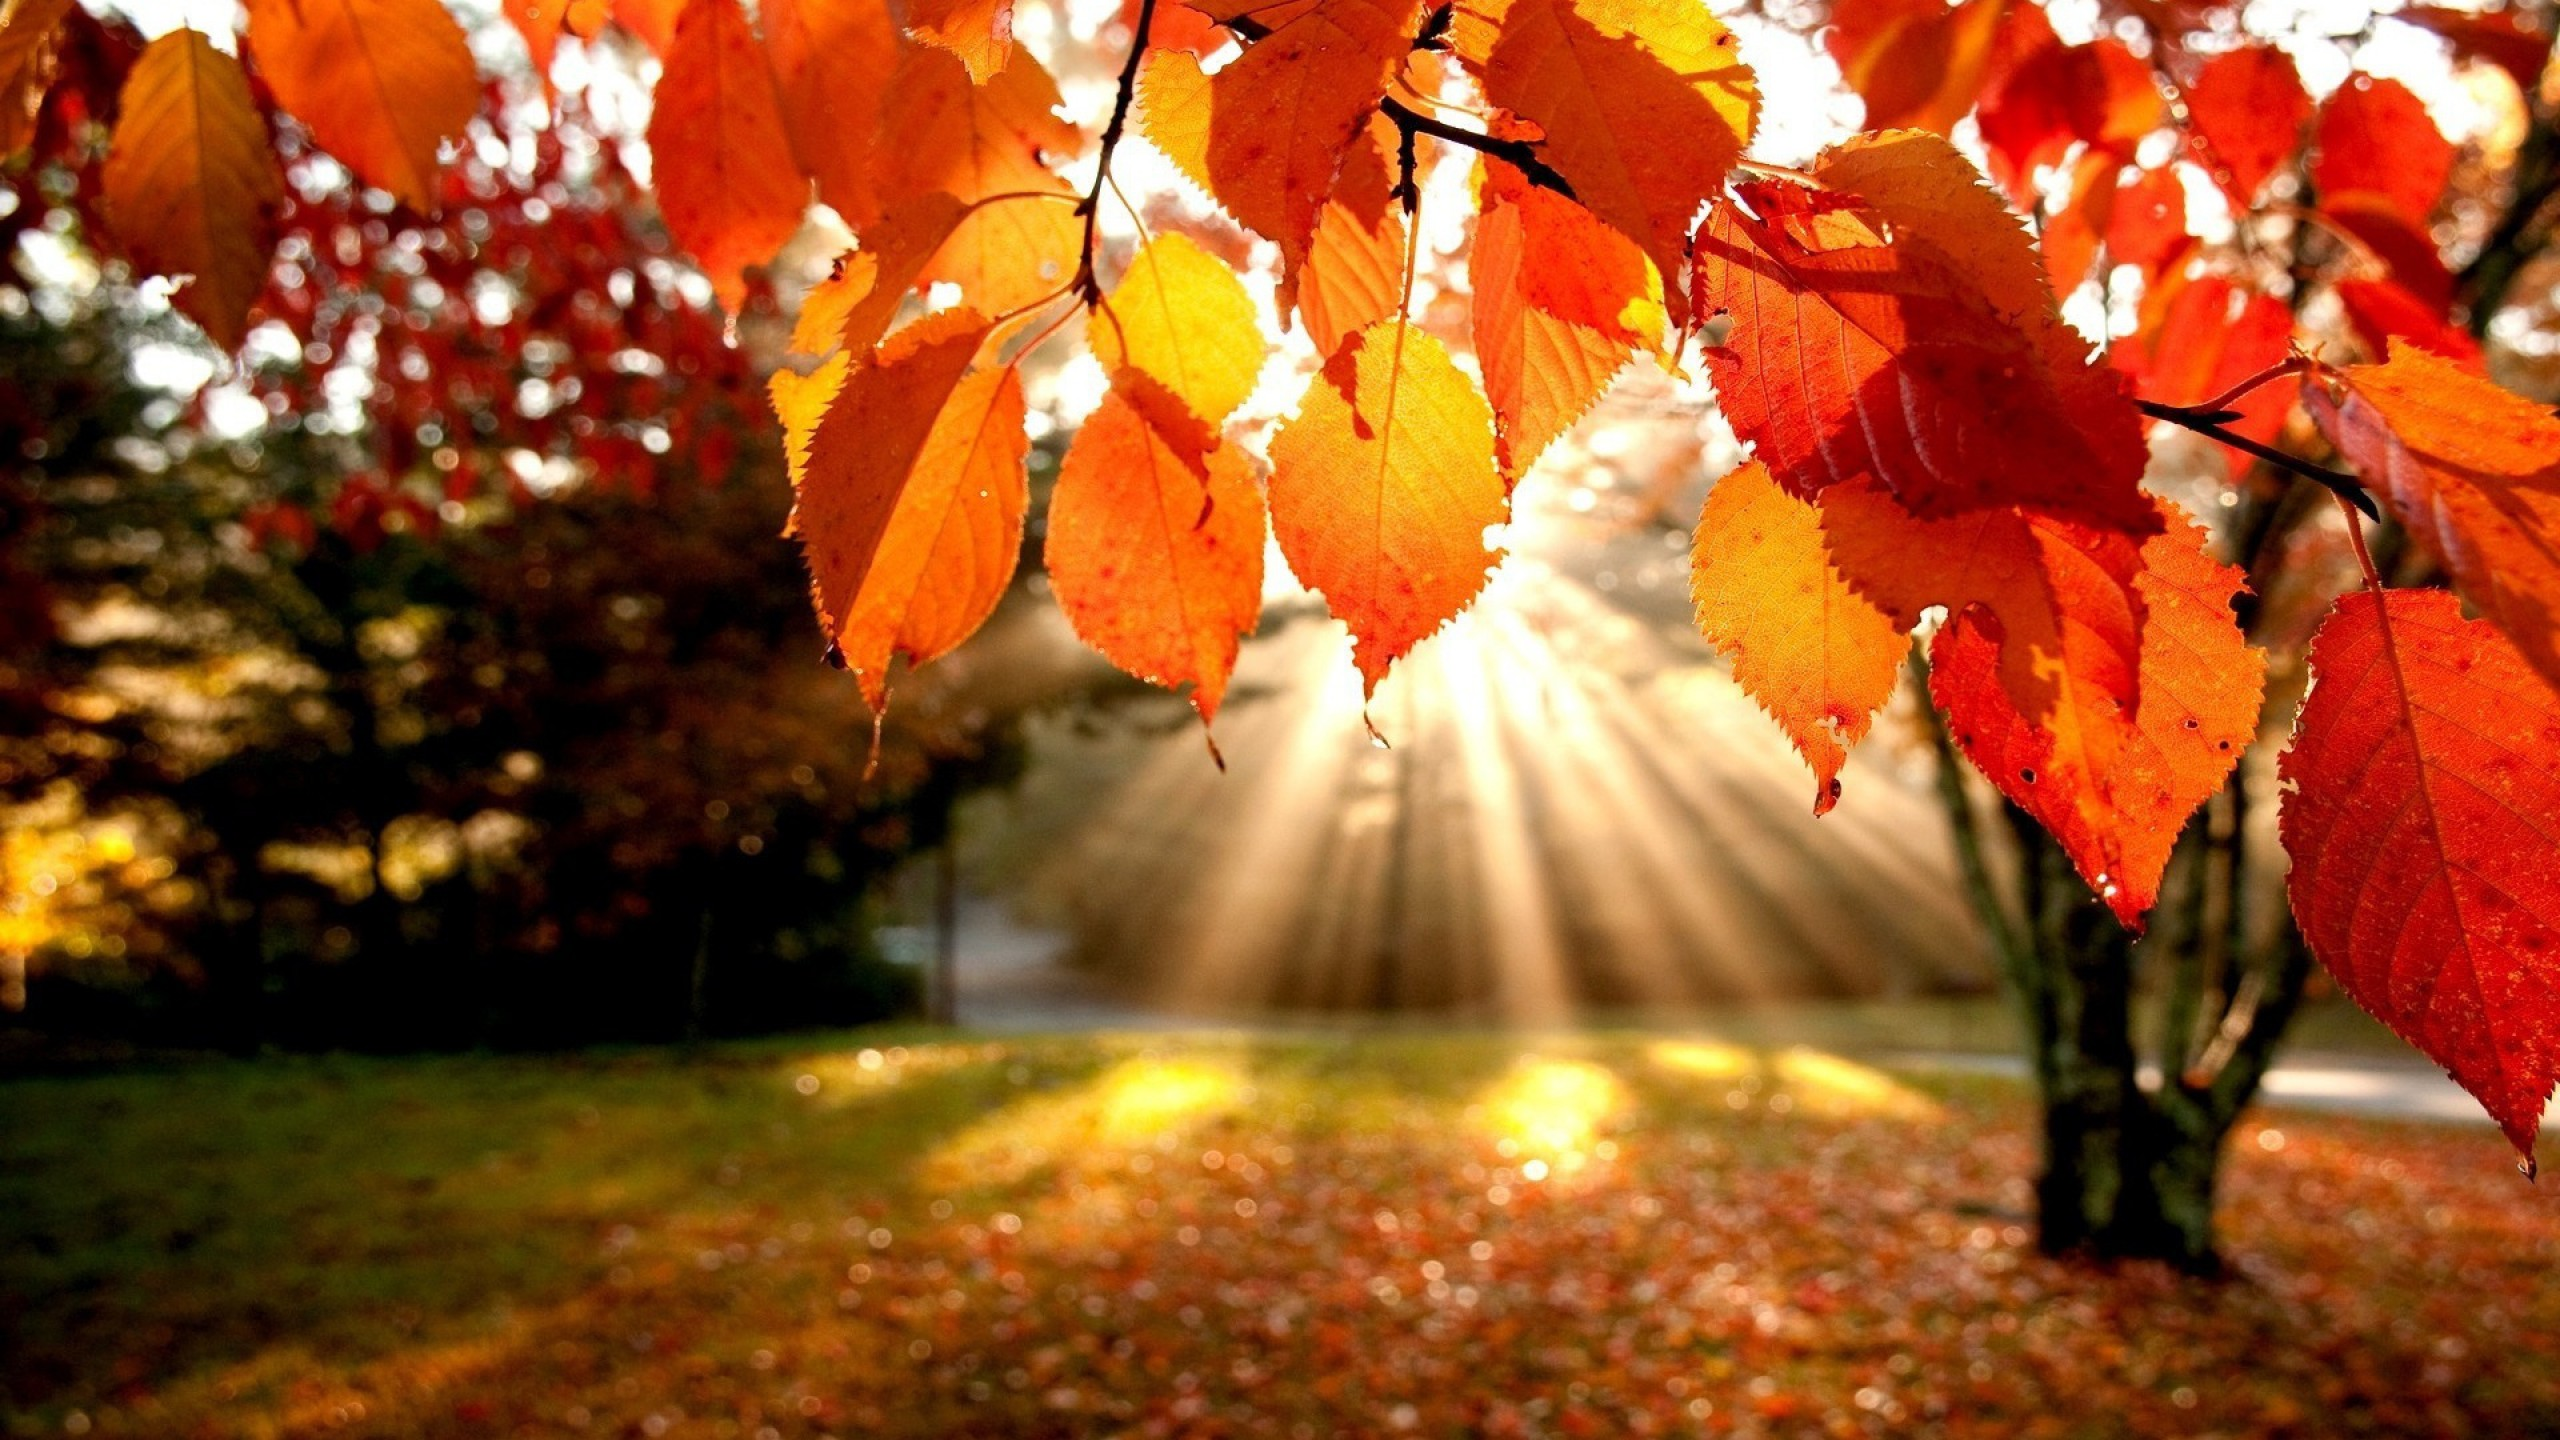 Analysis of Ode to Autumn by John Keats